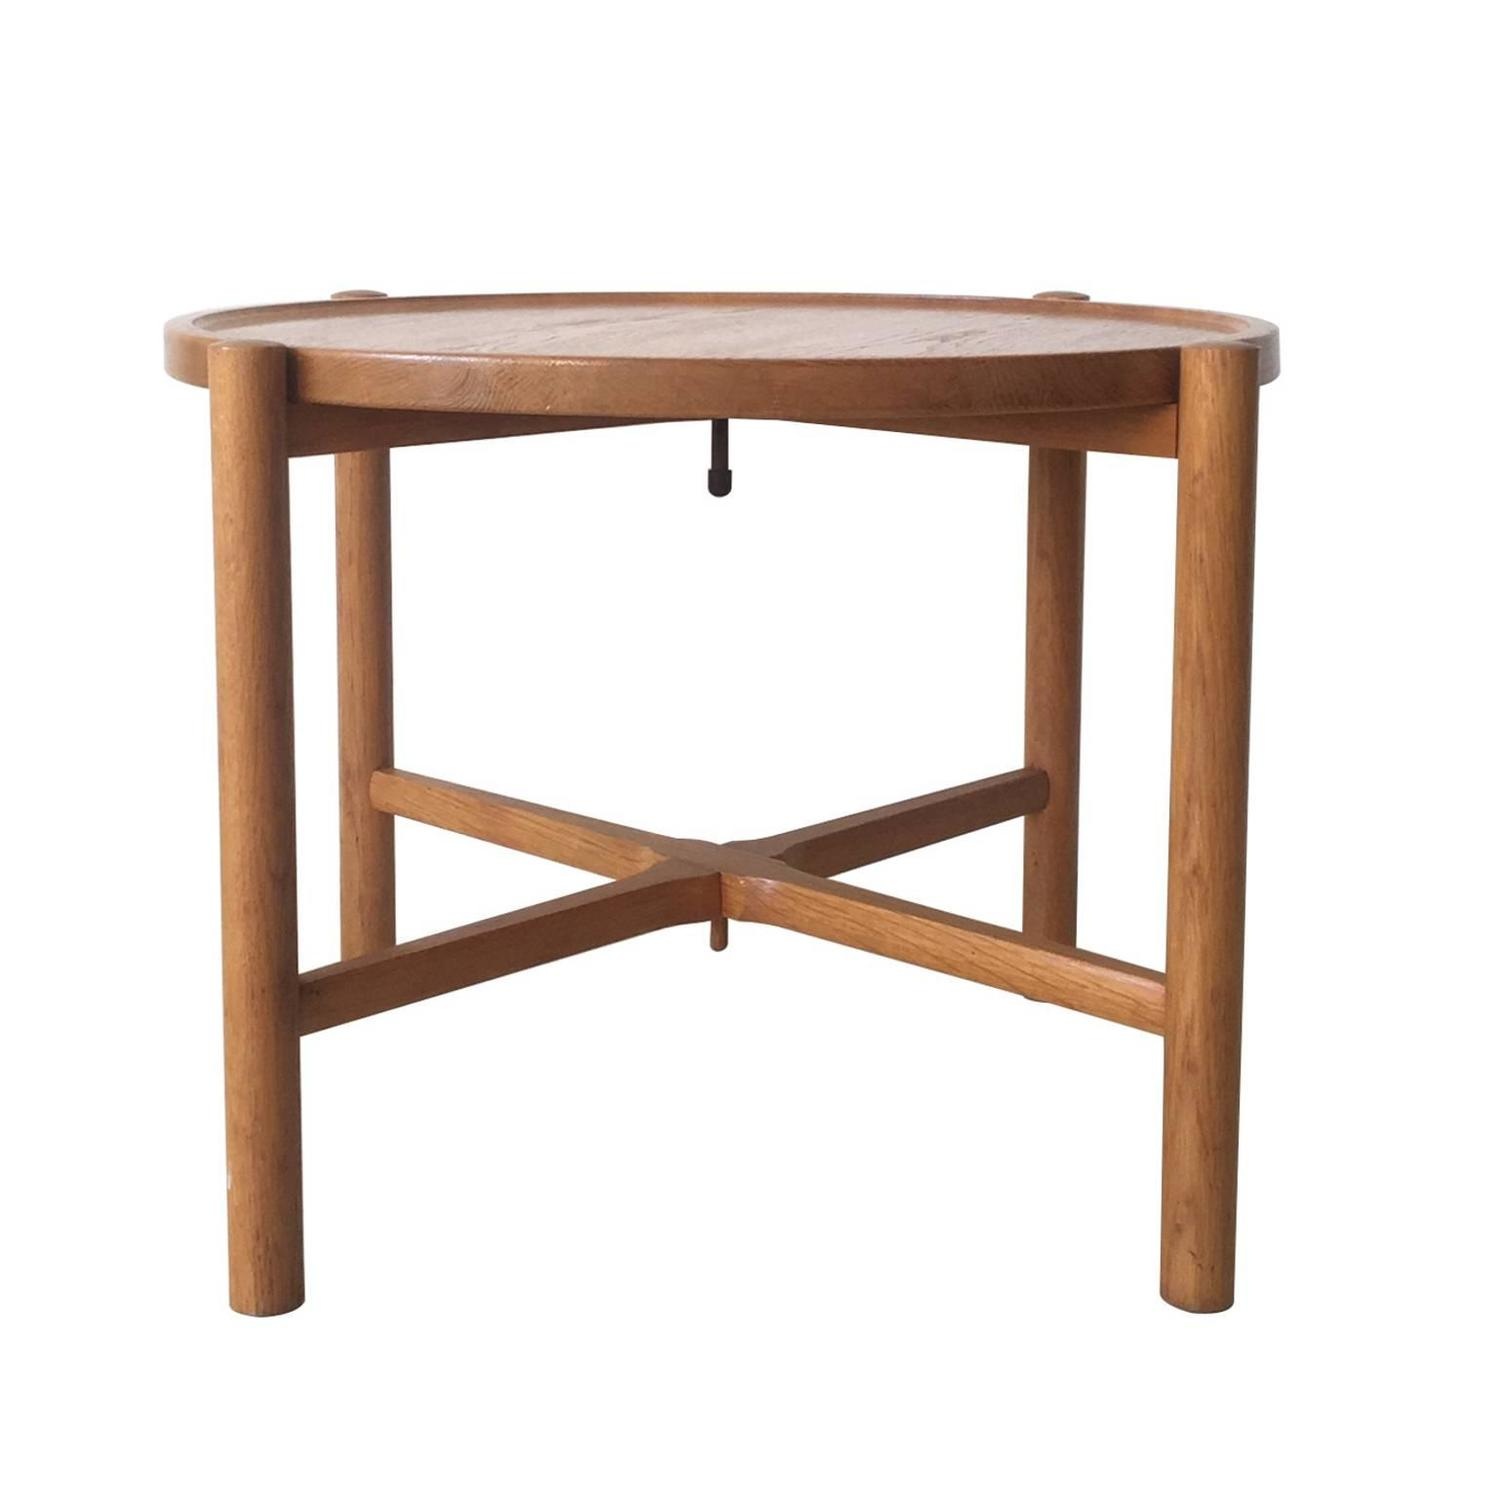 PP 35 Tray Table by Hans Wegner for PP Mobler 1945 For Sale at